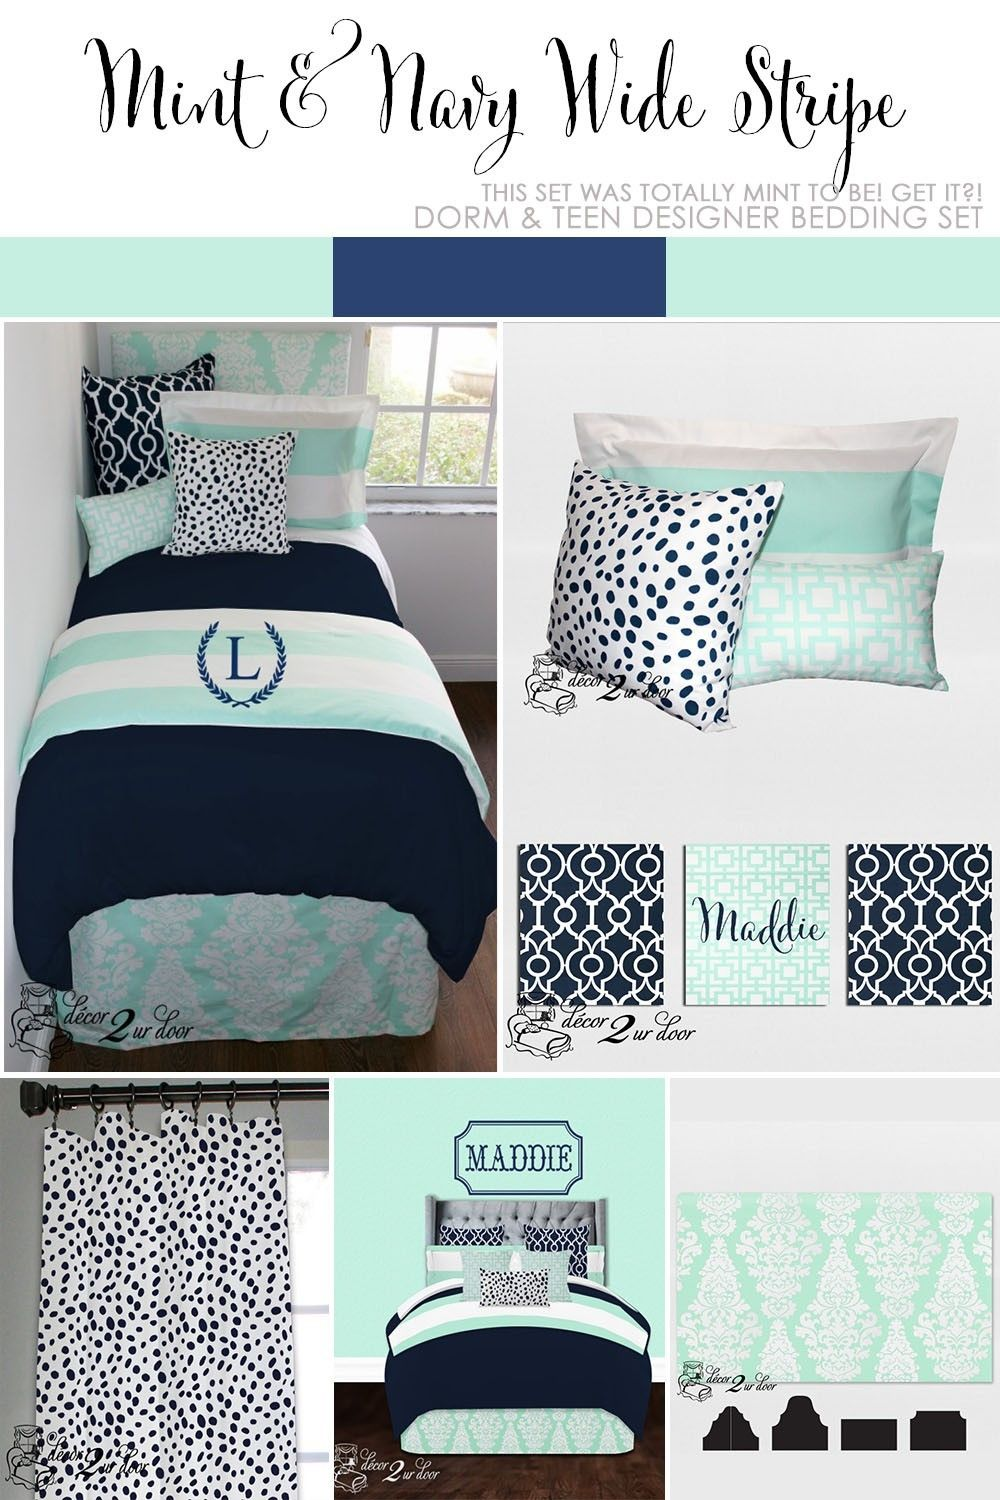 Mint And Navy Nautical Dorm Room Décor More Available In All Bed Sizes Twin Full Queen King Custom Pillows Exclusive Scarf